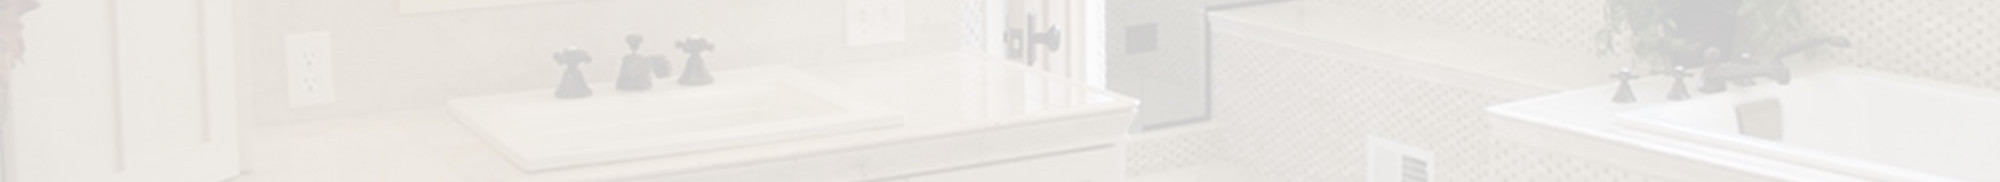 banner-bkgd